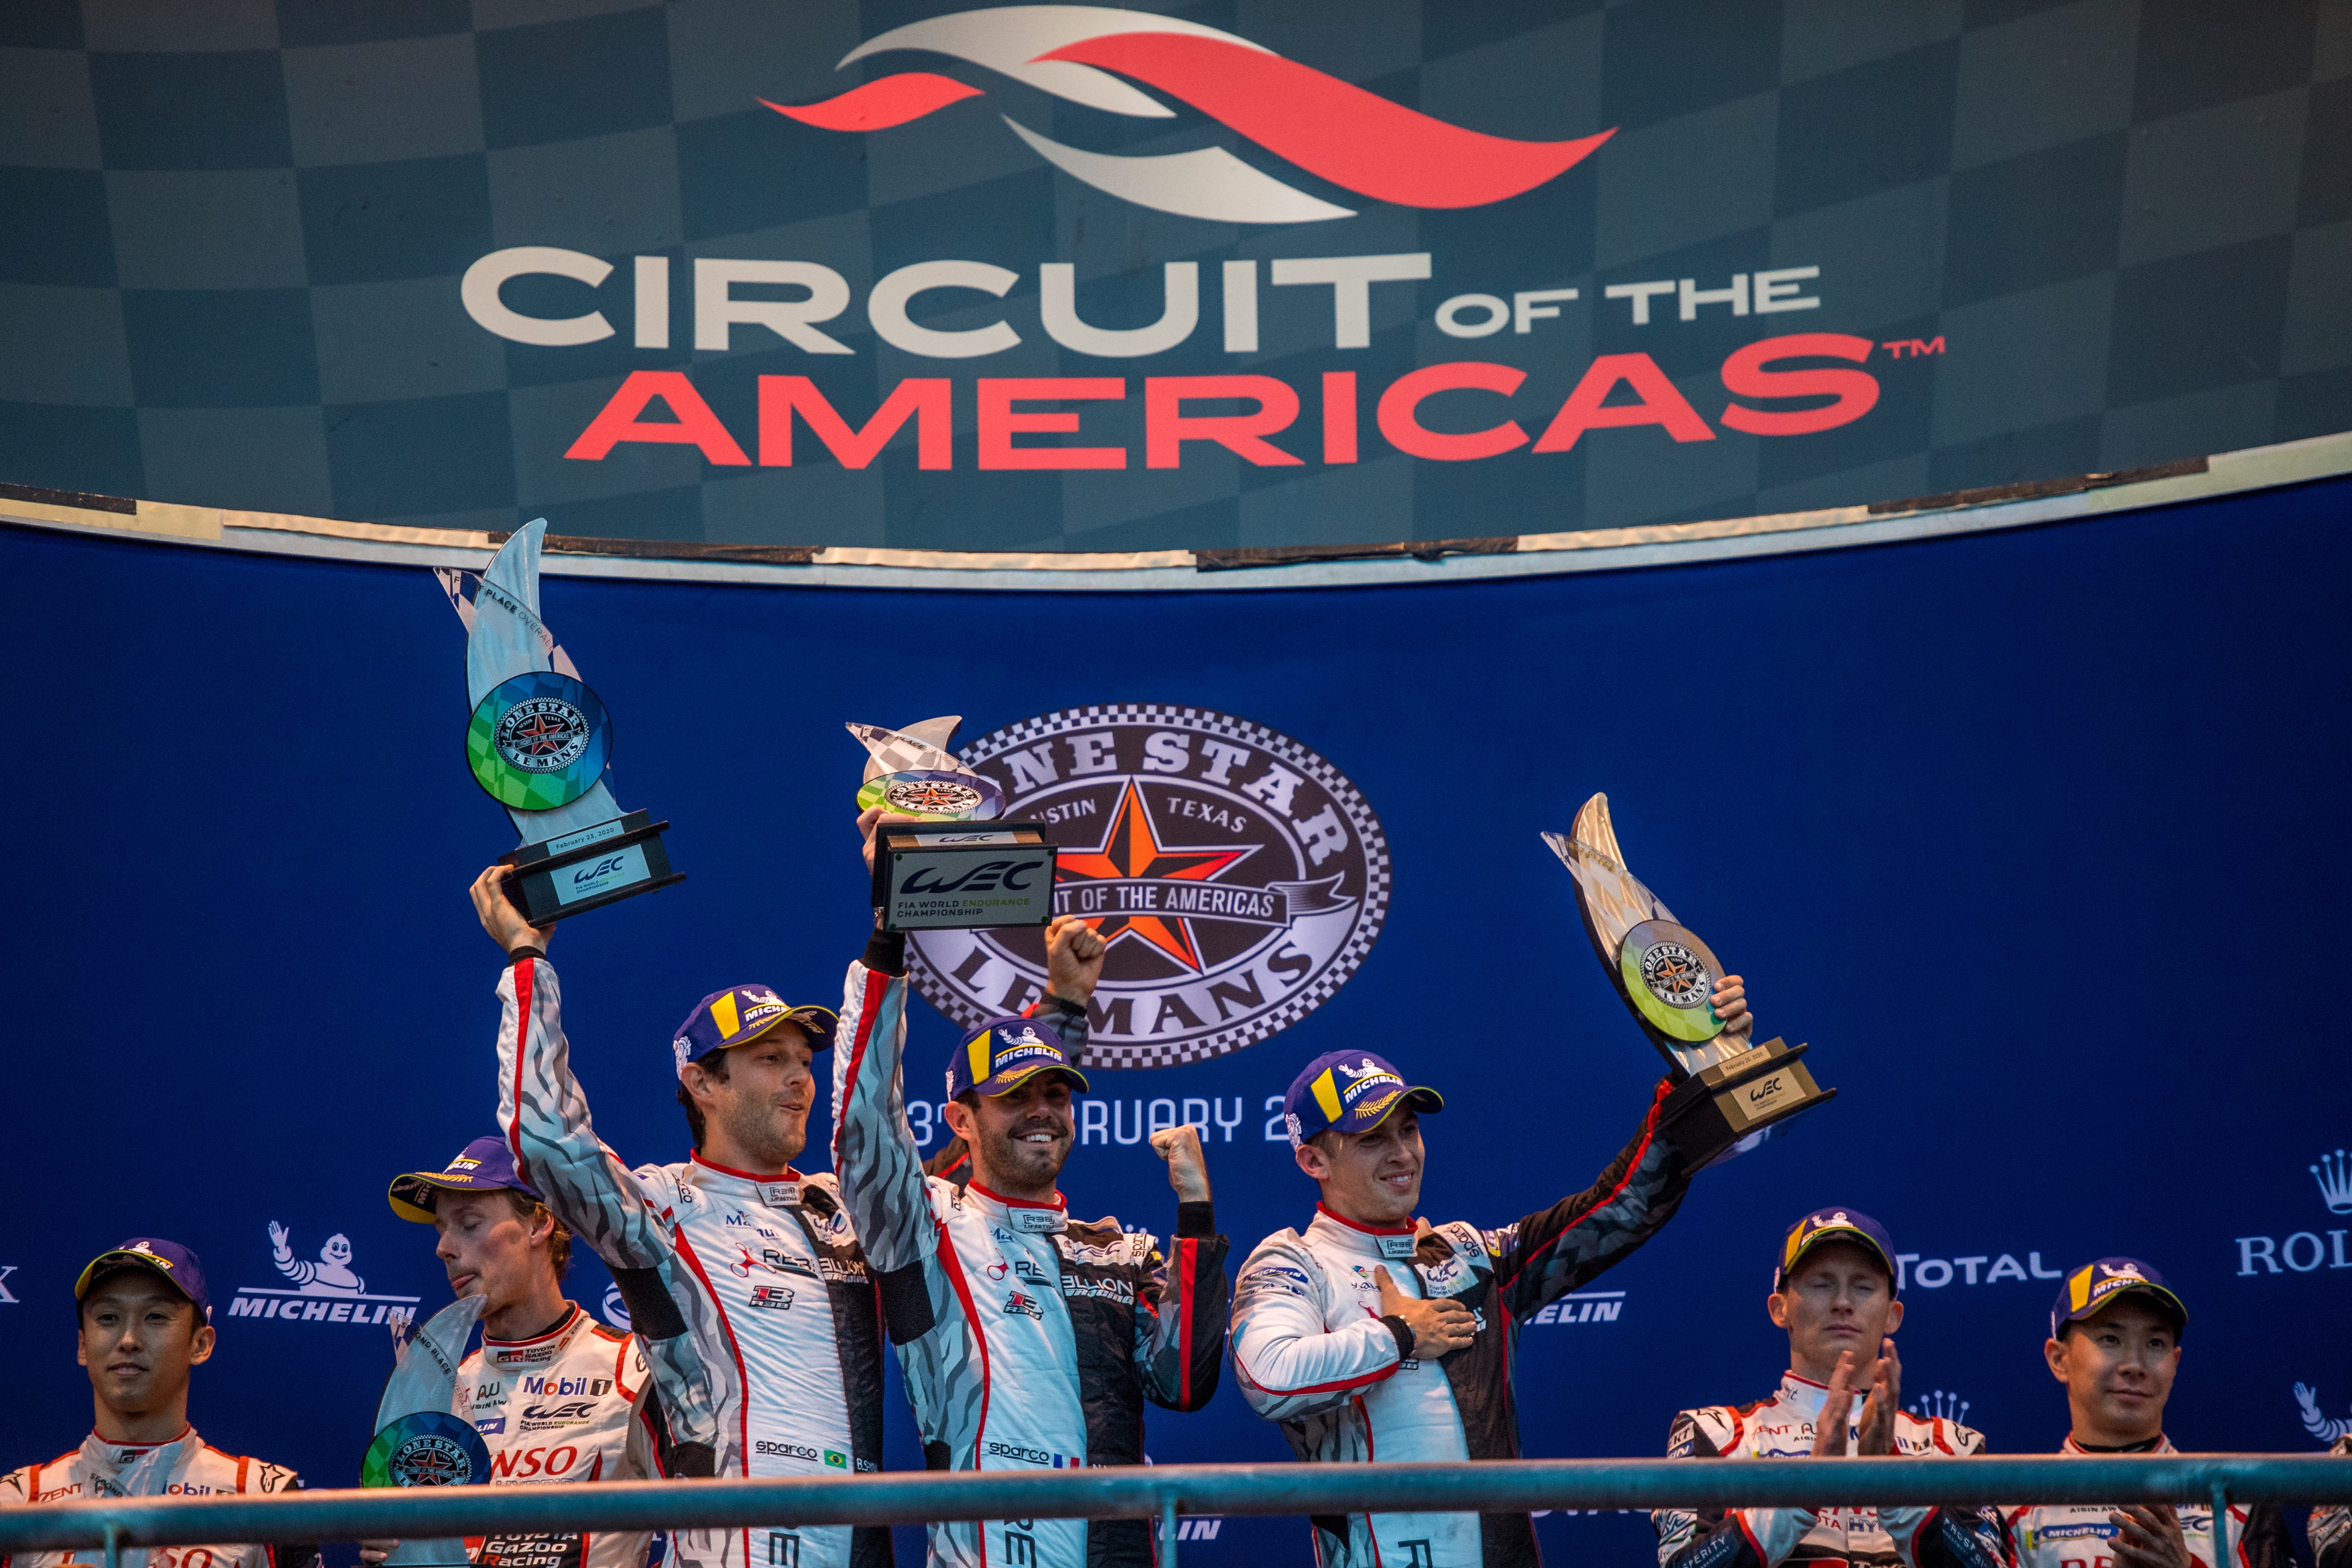 Grand-slam glory for Michelin in Texas